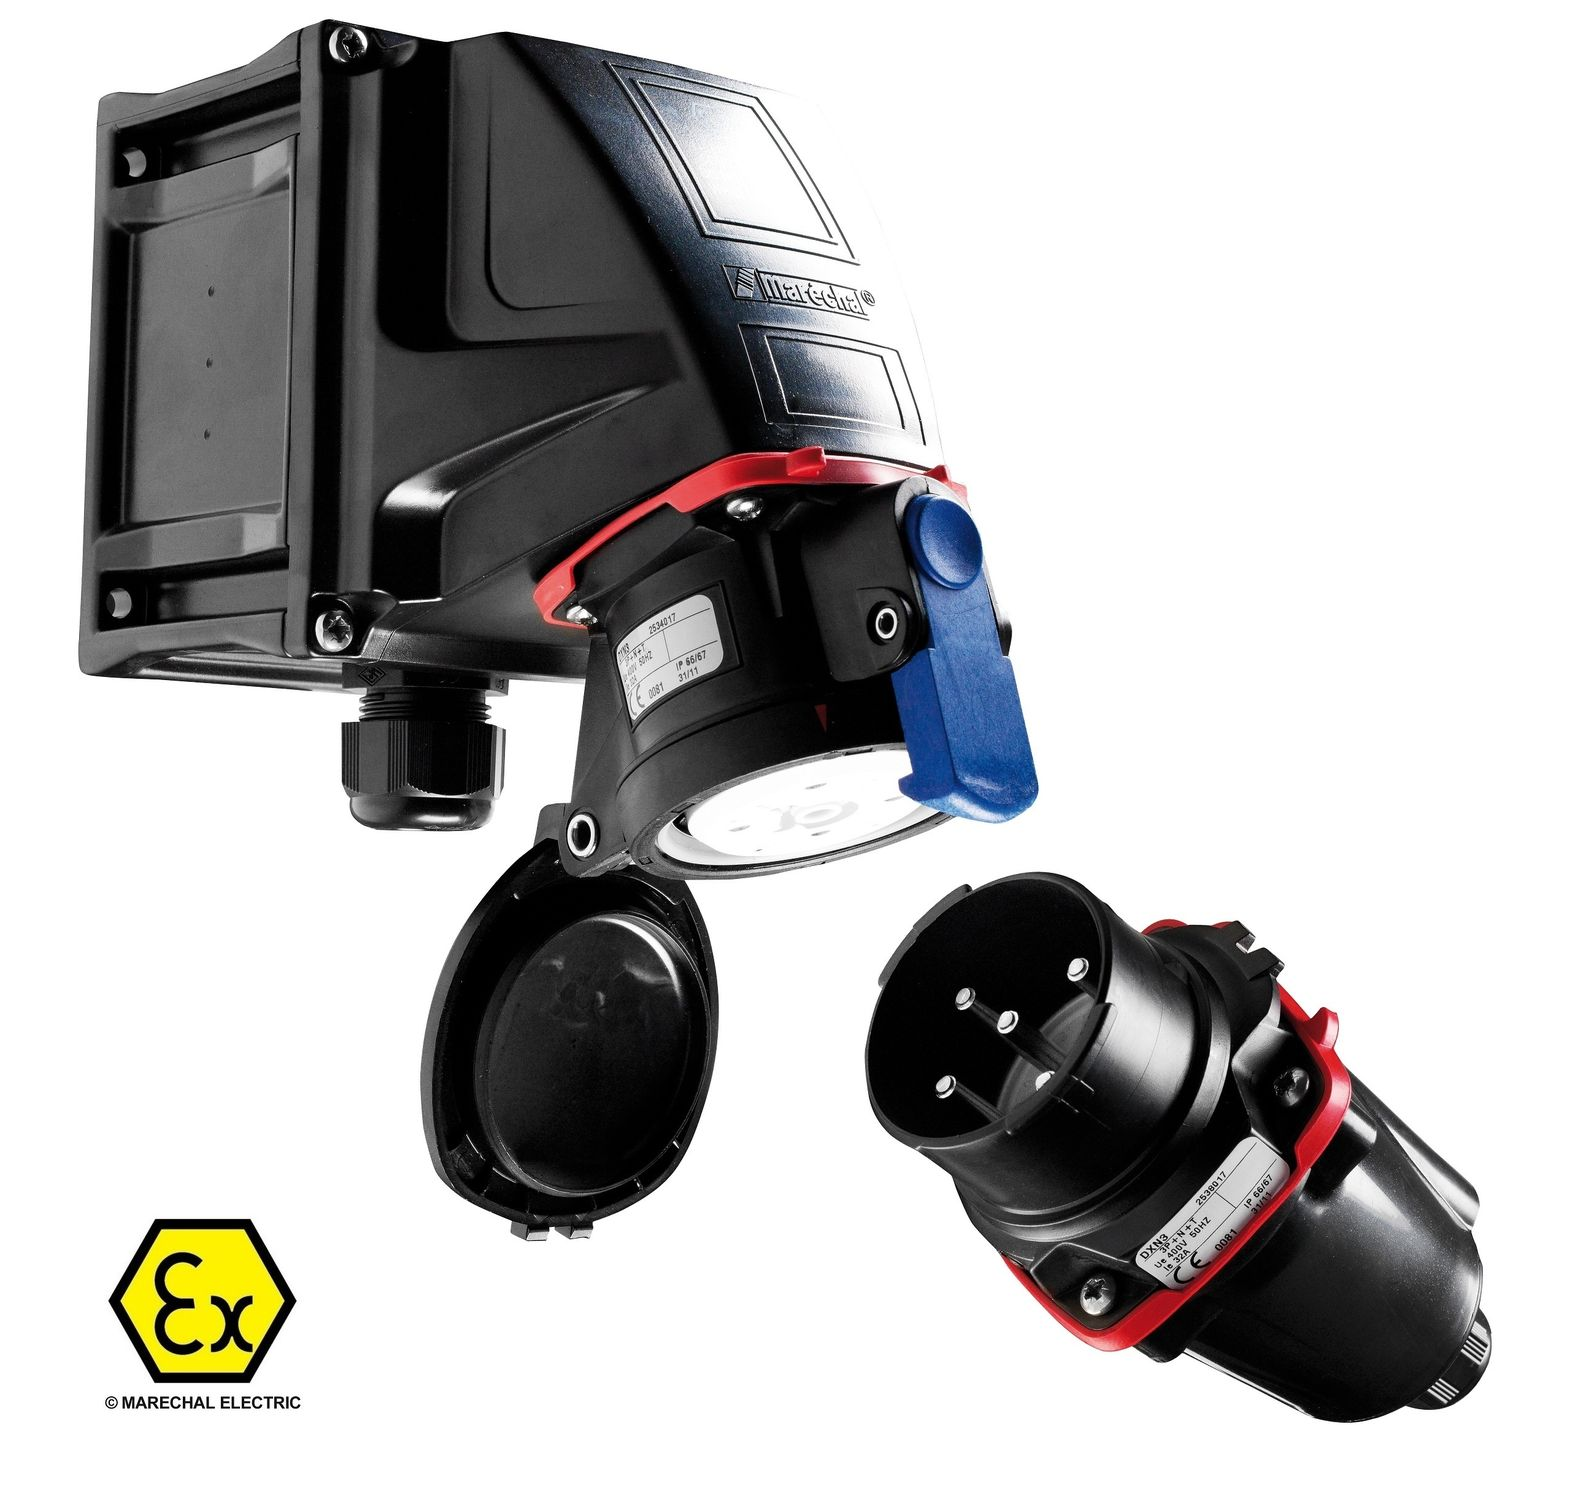 ATEX Plugs & Sockets : Marechal DXN1 20Amp Plug & Sockets for Hazardous Area Zone 1 & 2